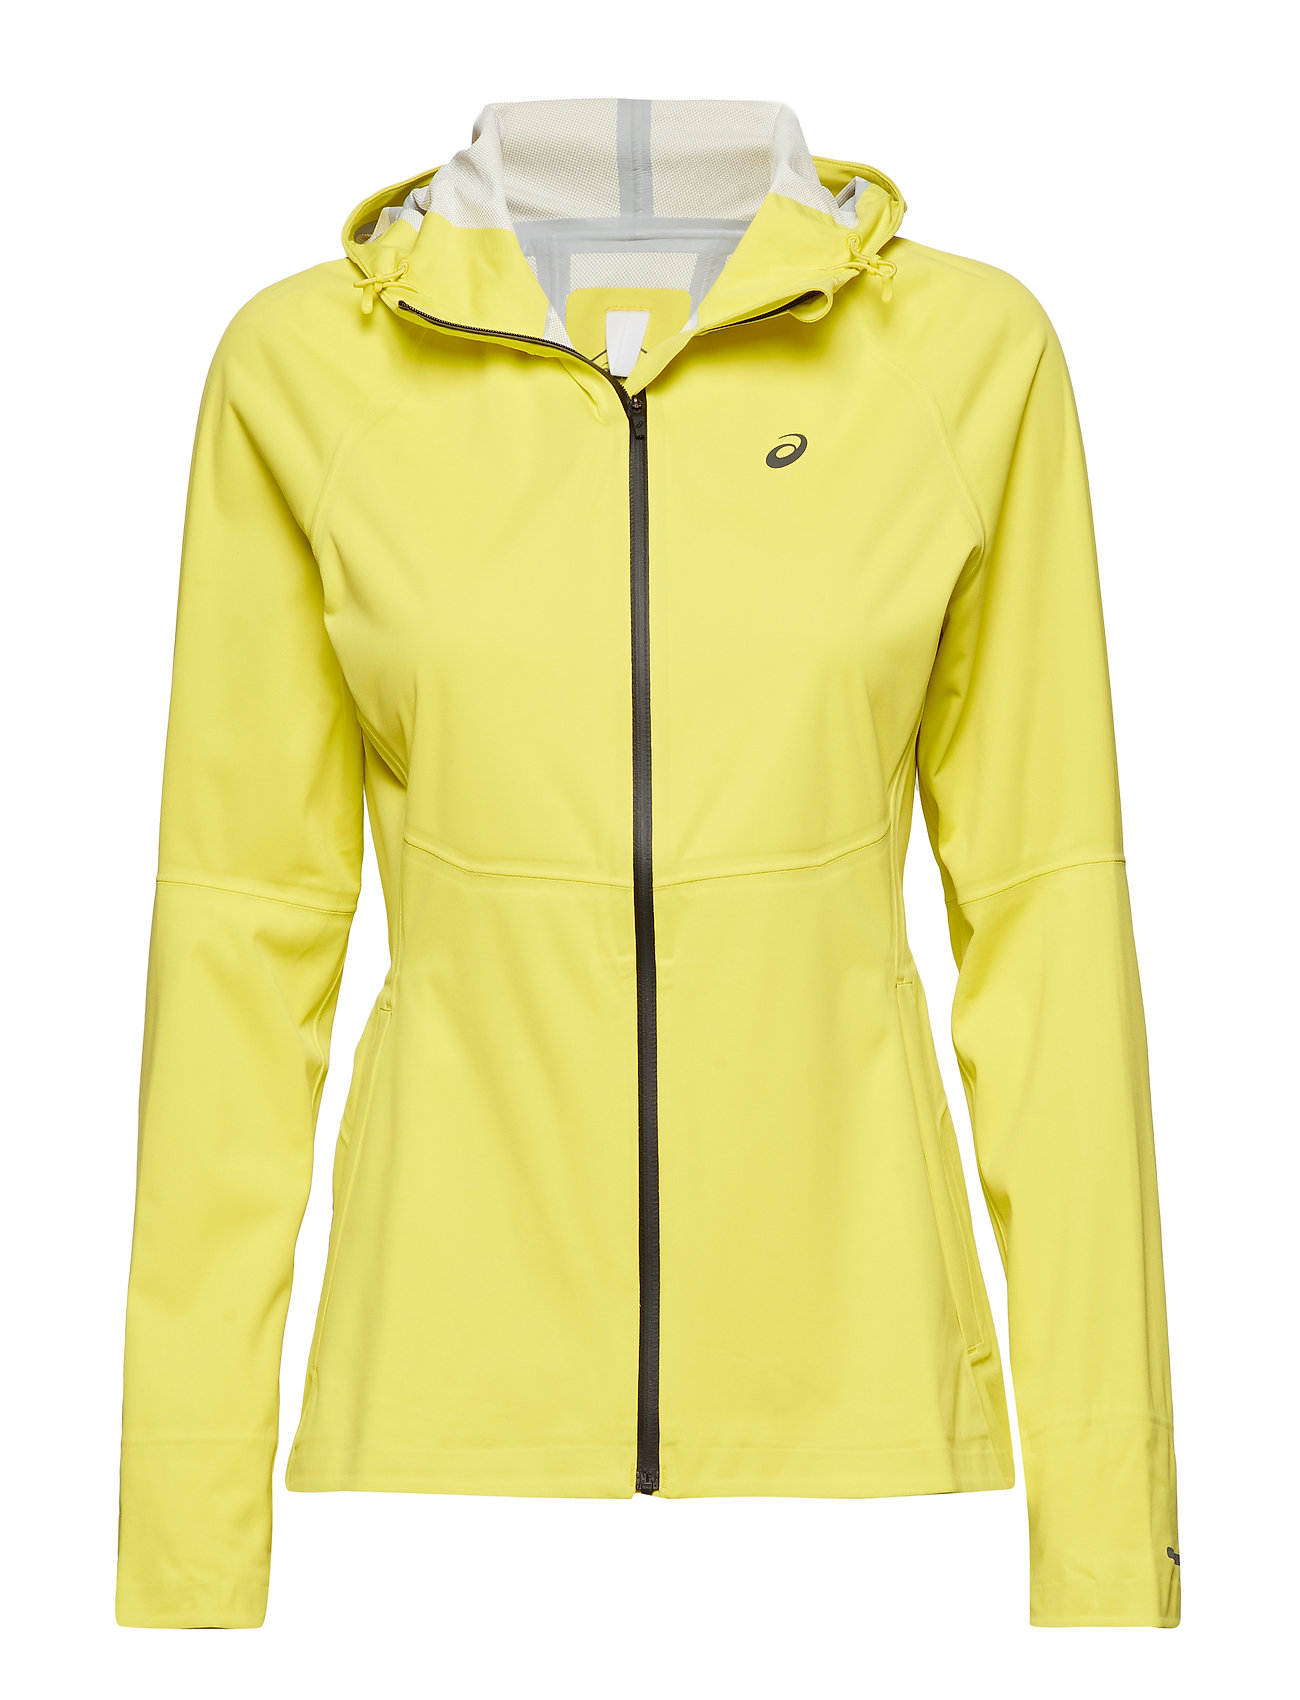 Asics ACCELERATE JACKET - LEMON SPARK